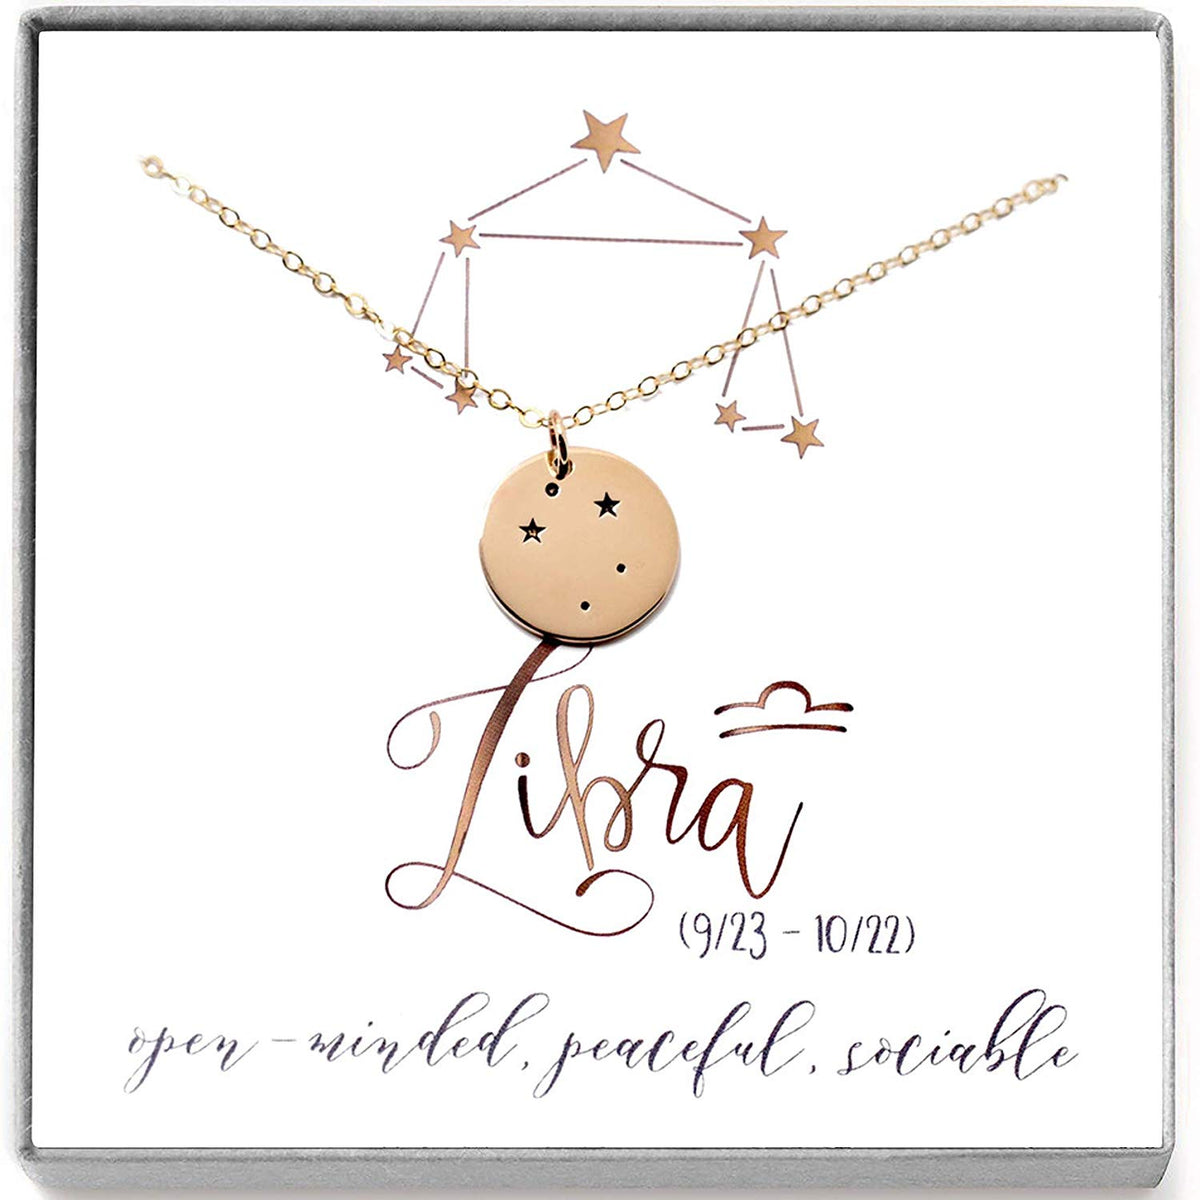 Libra Zodiac Sign 14K Gold Filled Constellation Necklace - Love It Personalized